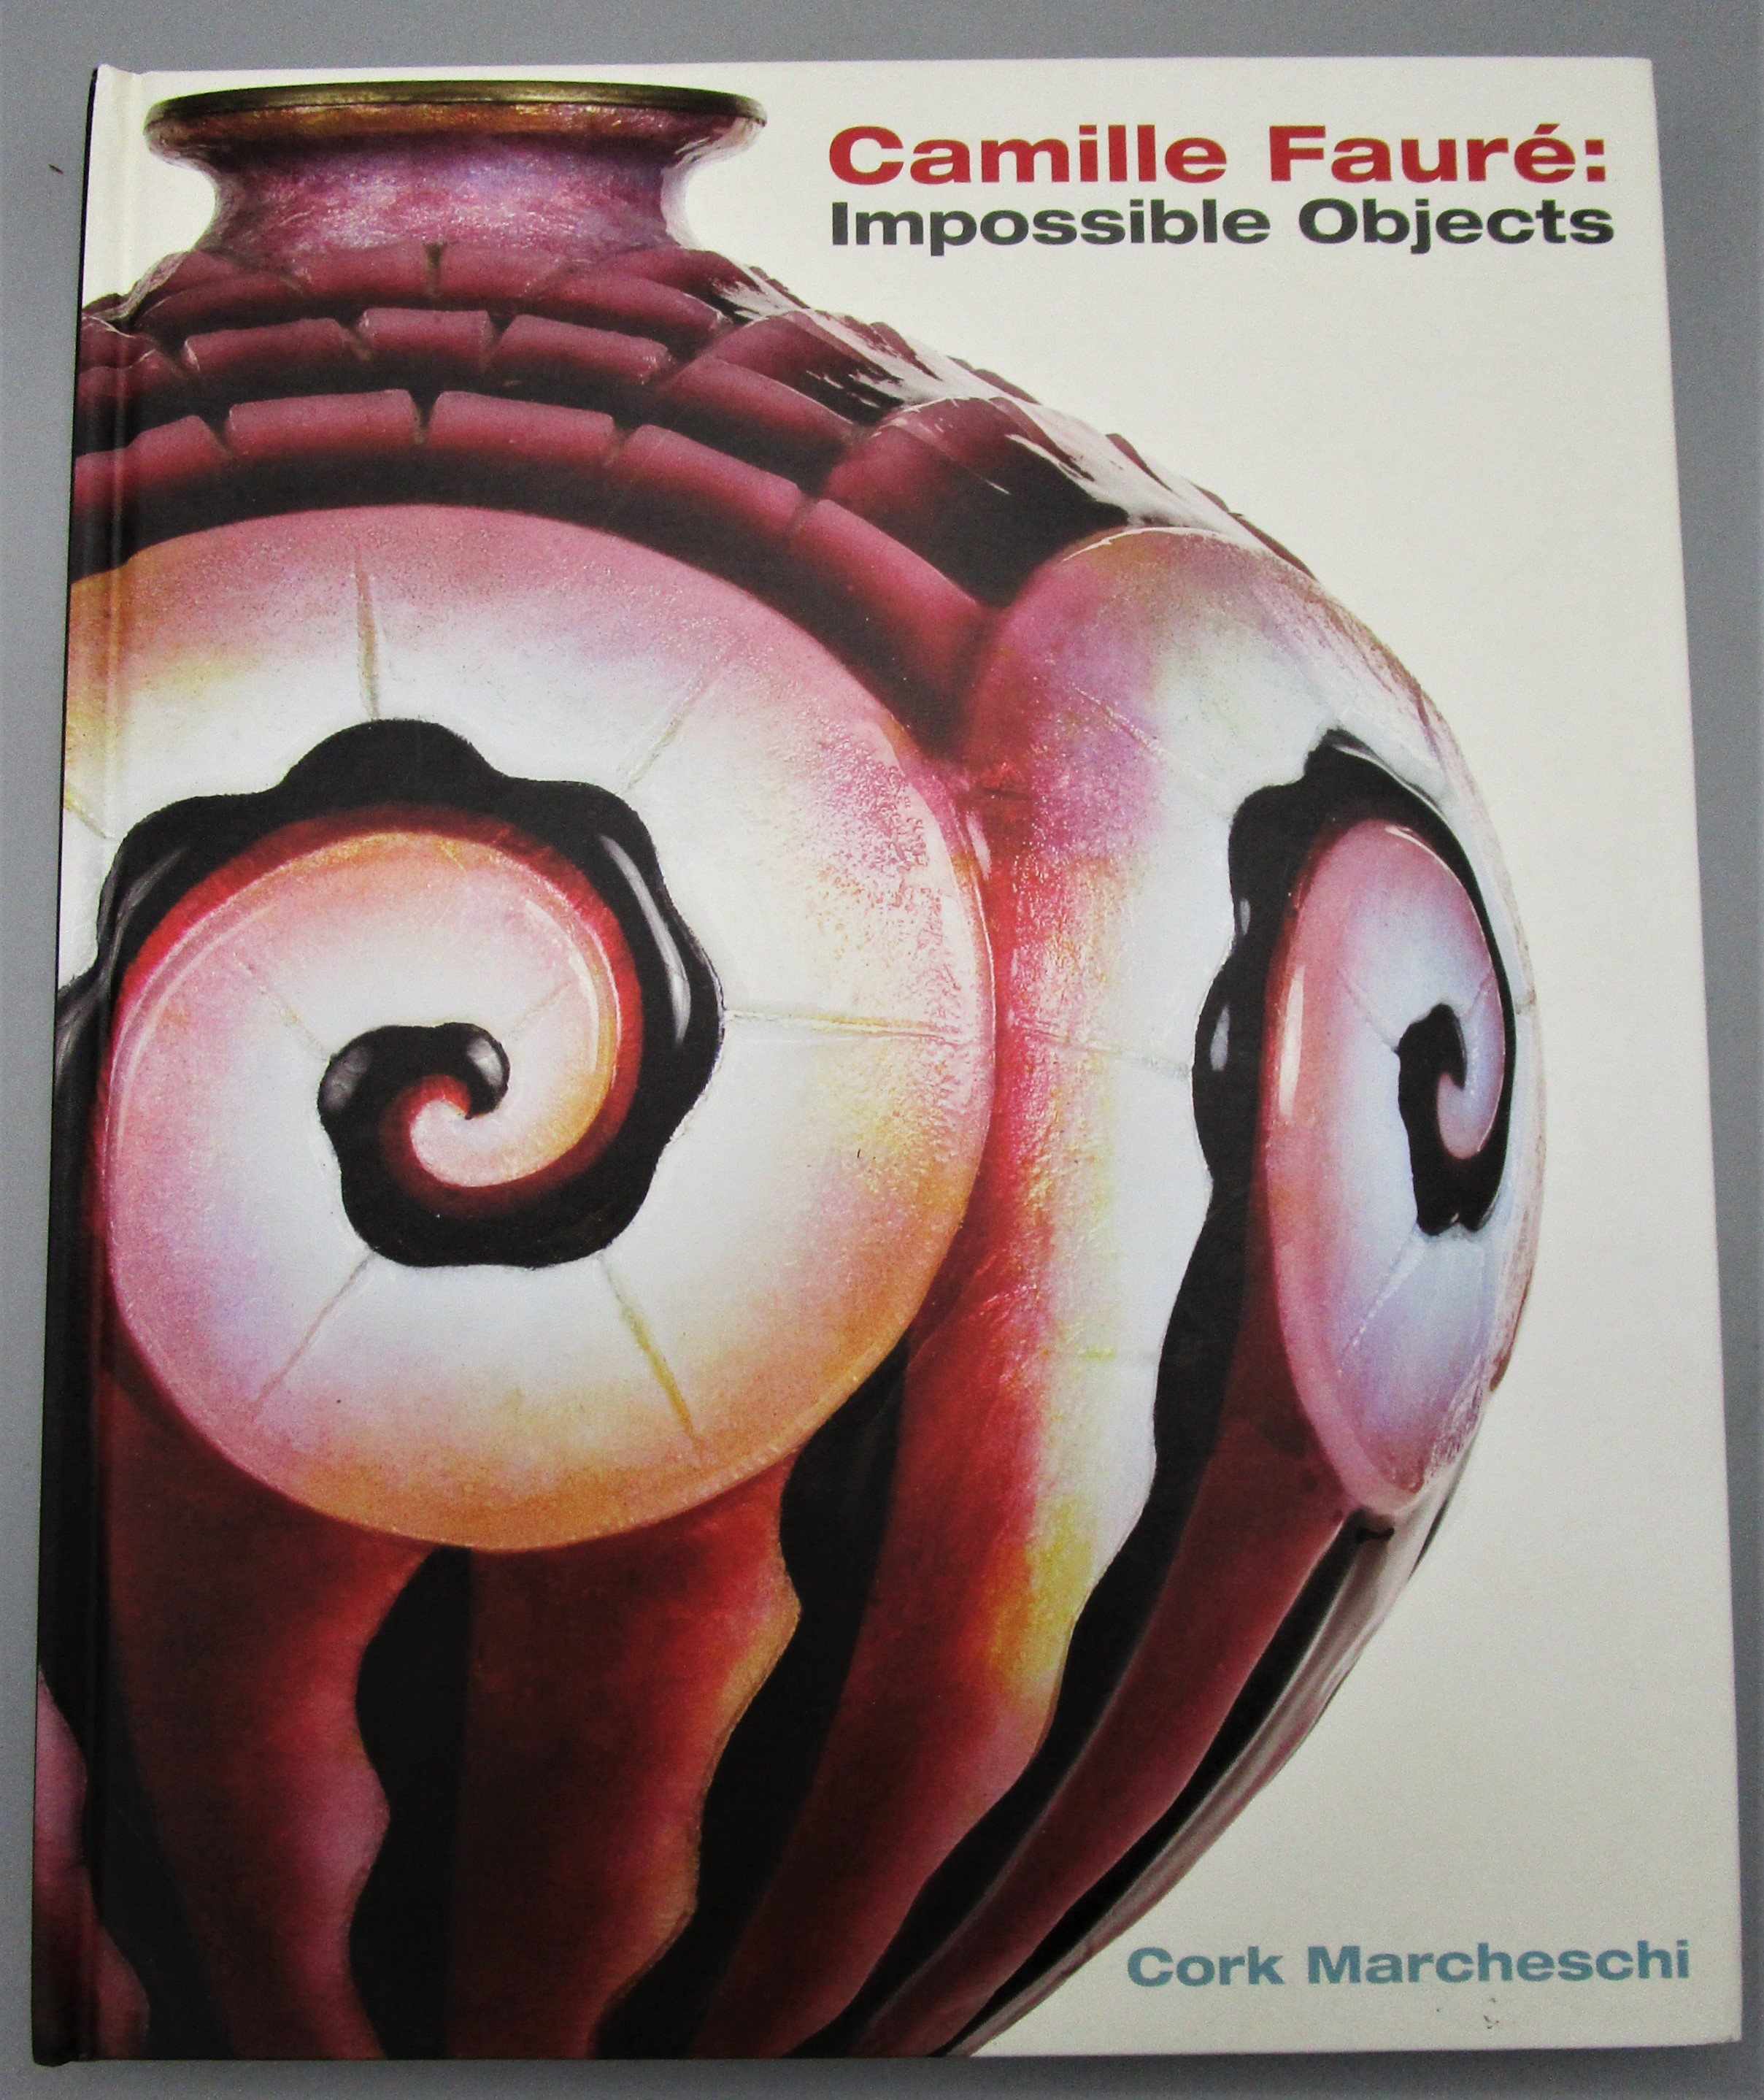 CAMILLE FAURE: IMPOSSIBLE OBJECTS, by Cork Marcheschi - 2007